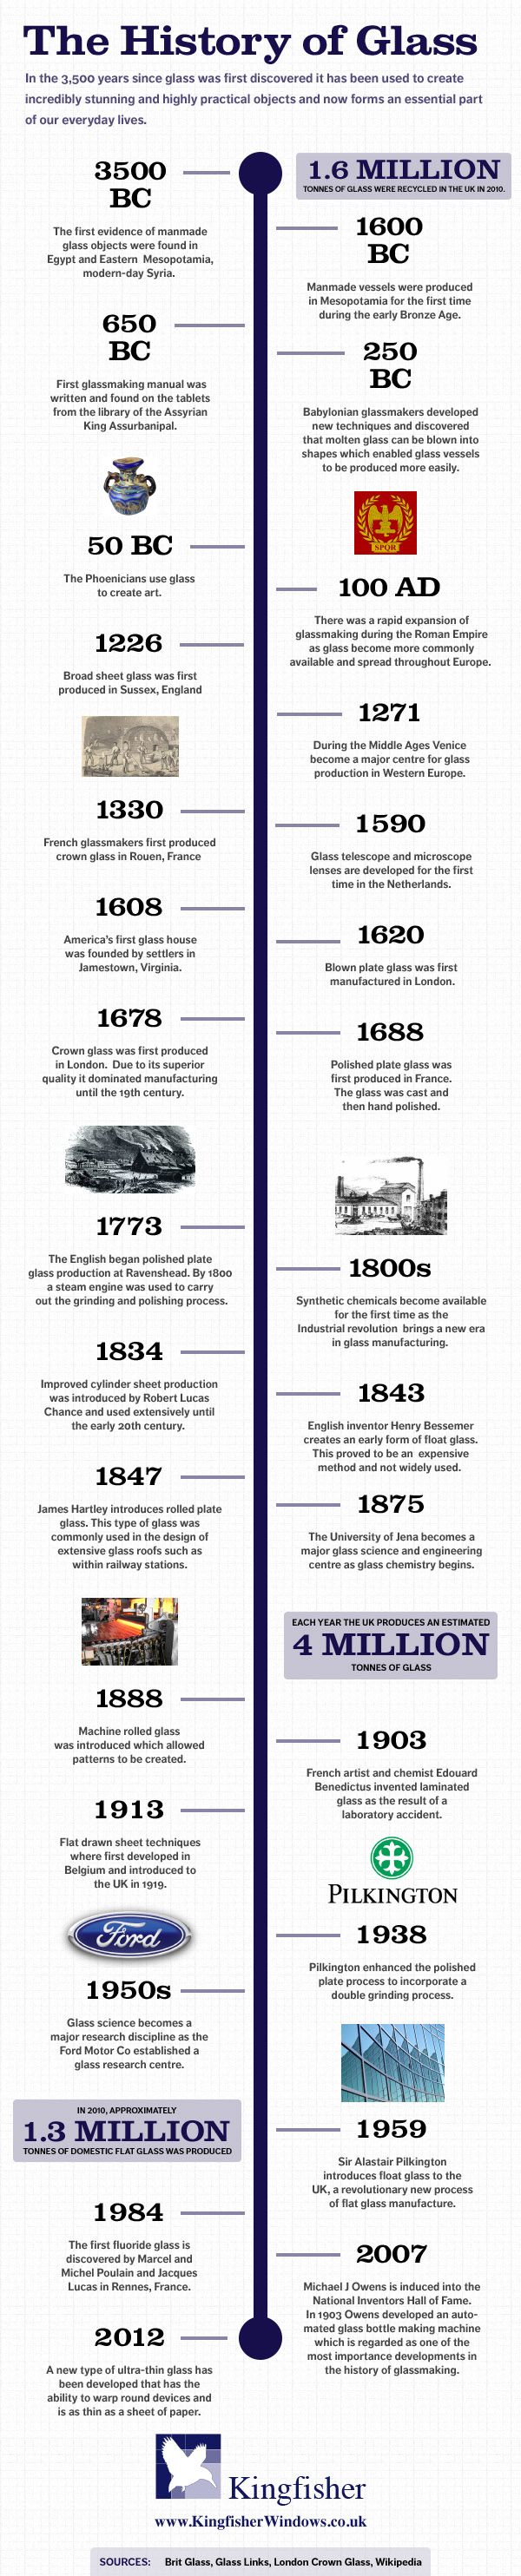 Glass - History and Timeline